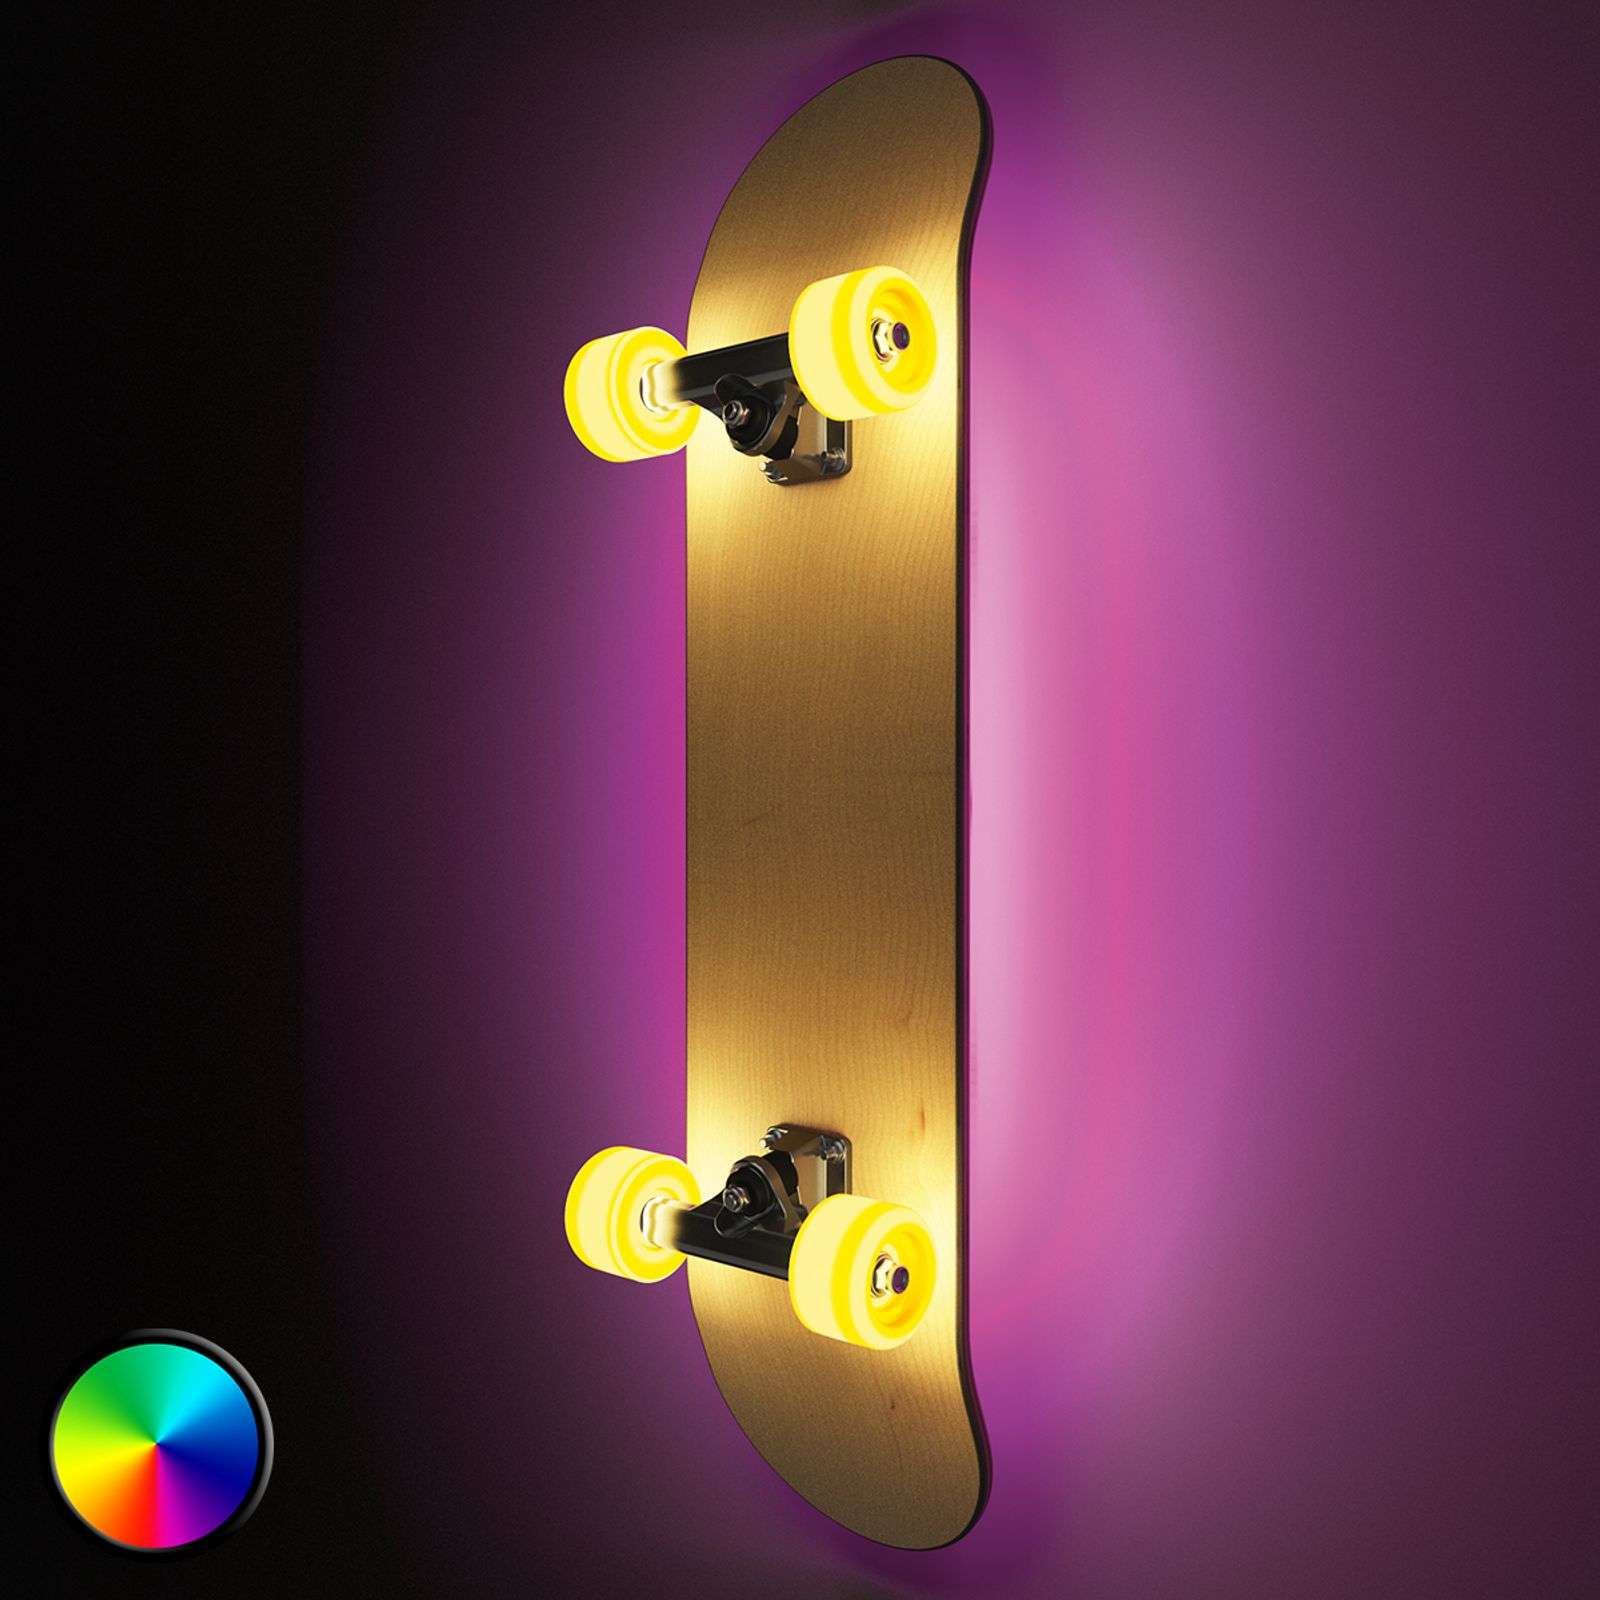 Lampada LED da parete Light Cruiser a skateboard